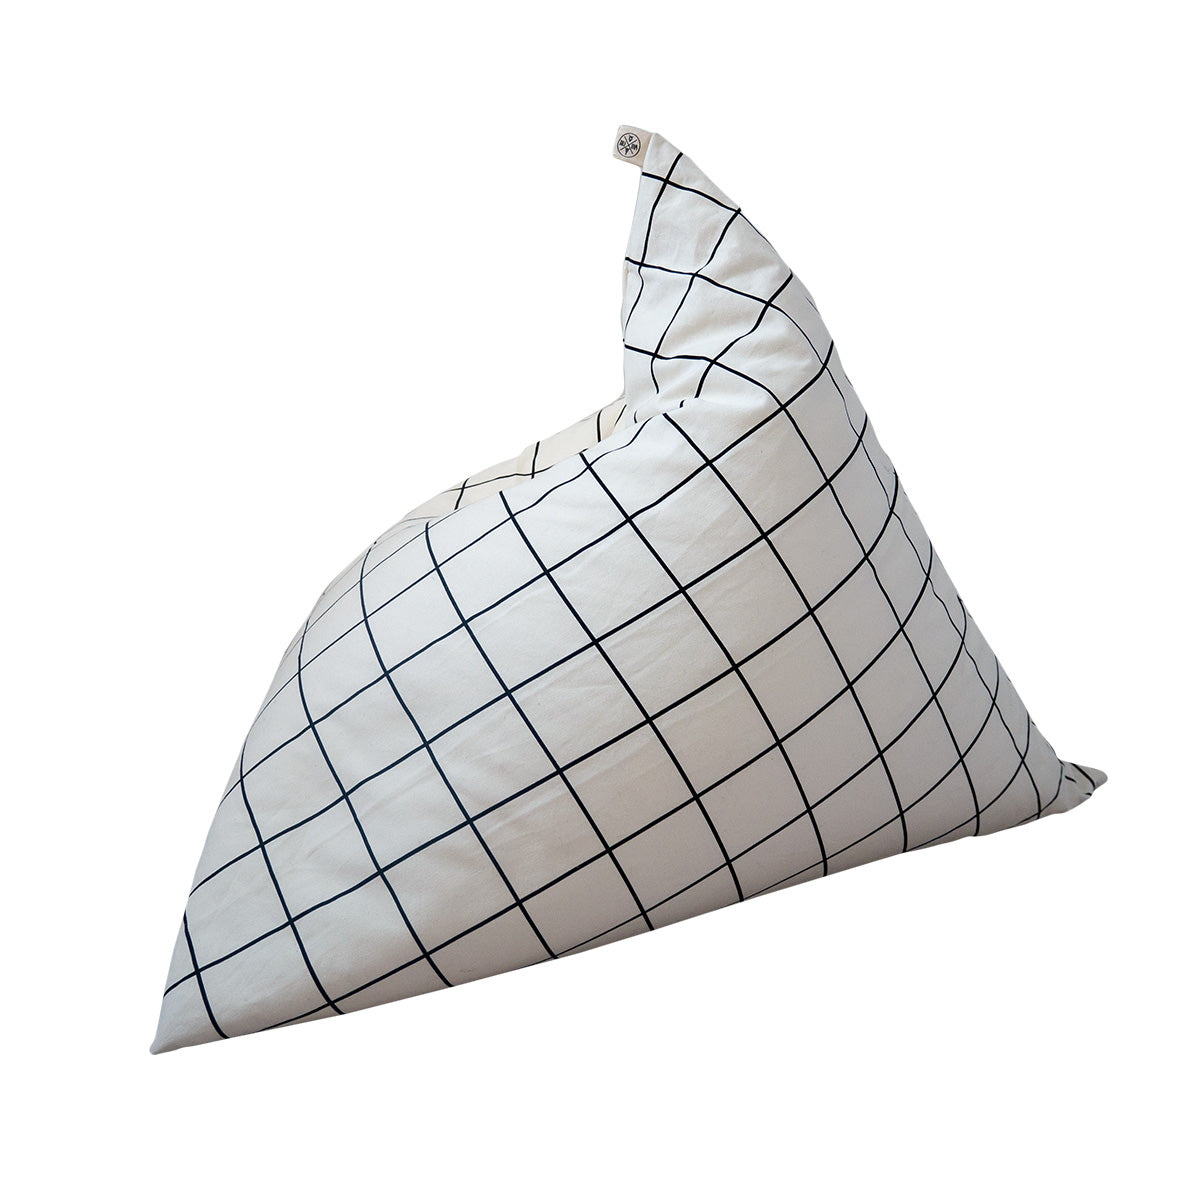 Wildfire Teepees Grid Pyramid Bean Bag - Wildfire Bean Bag - Honest Home - Nordic - Organic Baby - Honest Motherhood - Nursery Decor - Baby and Child - Eco Friendly - Handcrafted - Monochrome - Simple Design